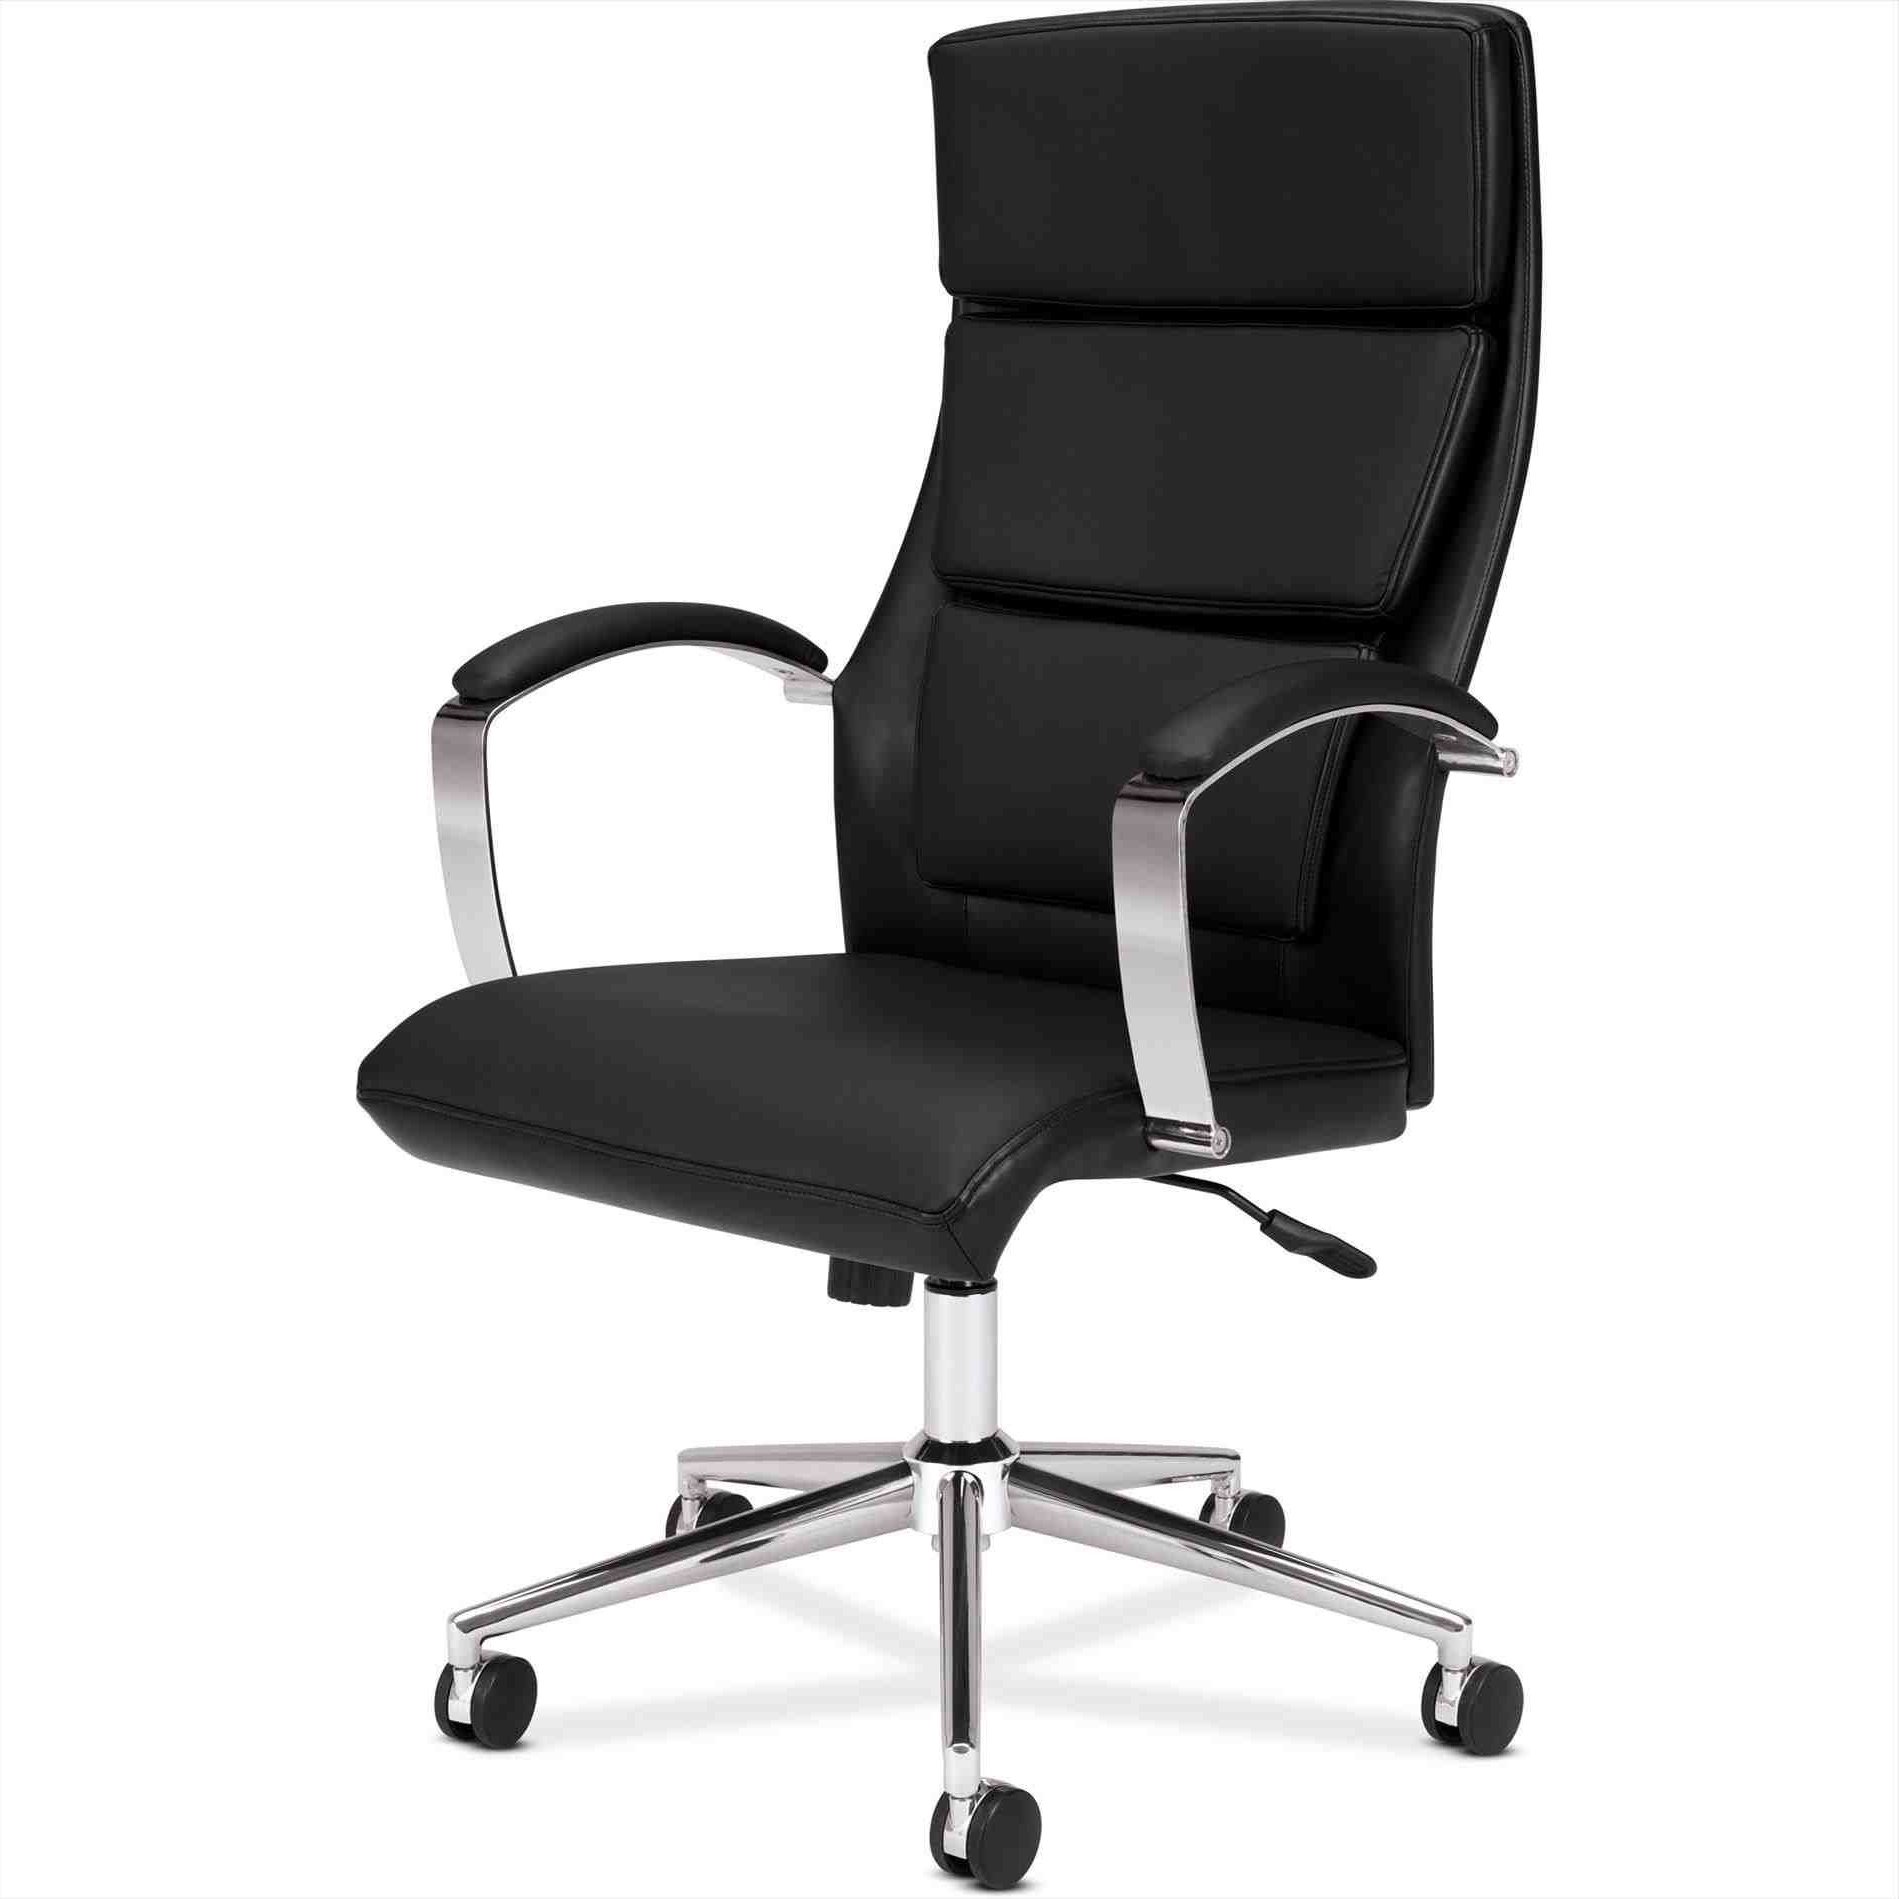 Lane Executive Office Chairs Regarding Most Recently Released Modern Executive Office Chairs With Price – Http://www (View 6 of 20)